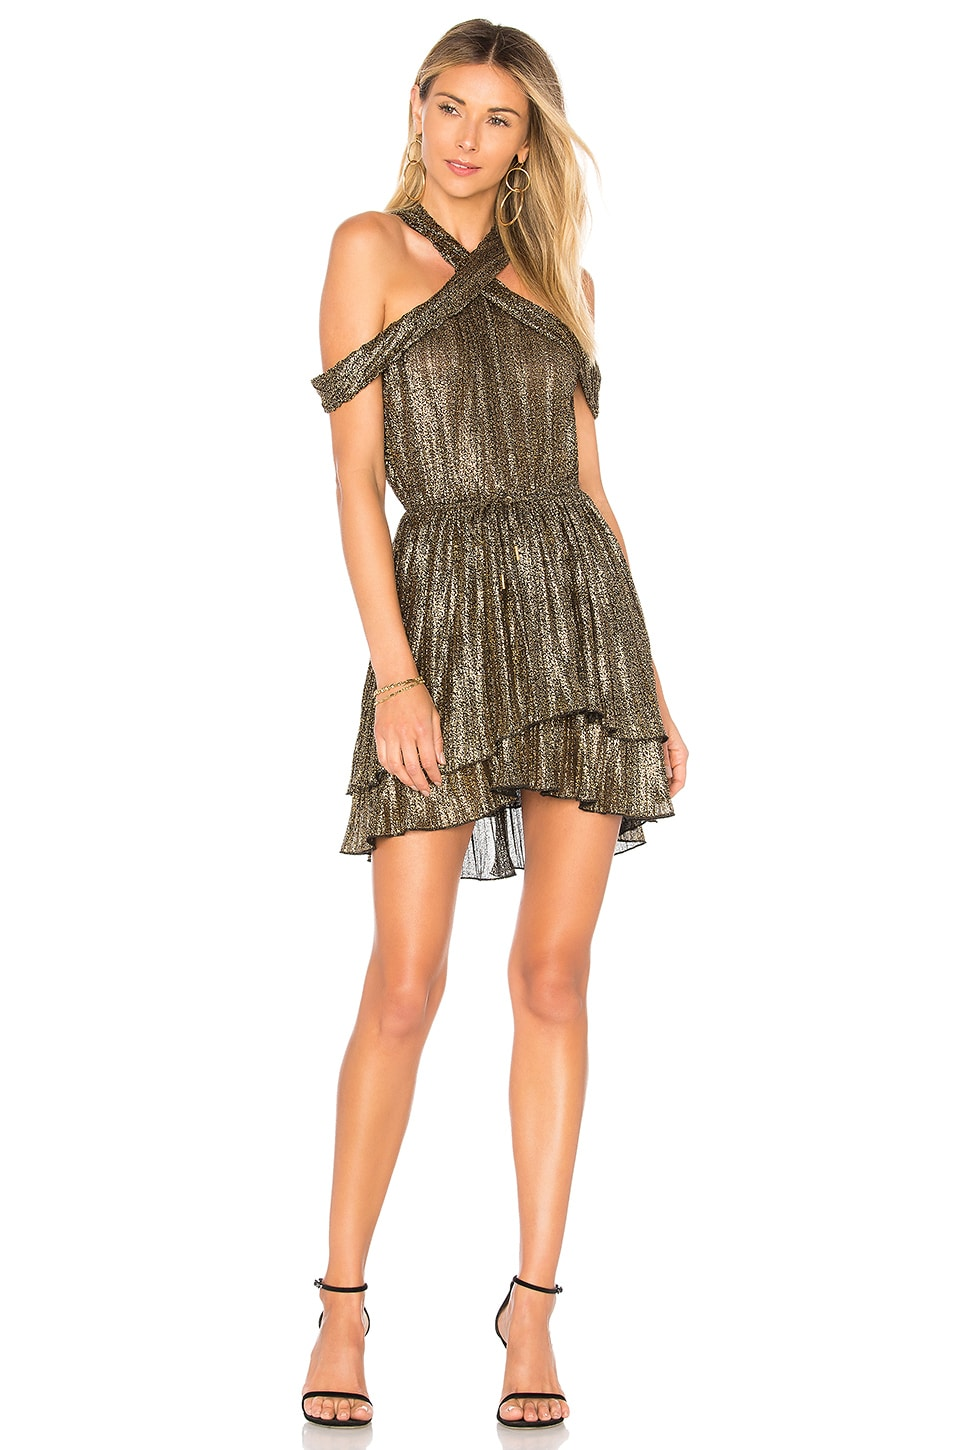 House of Harlow 1960 x REVOLVE Everly Dress in Noir